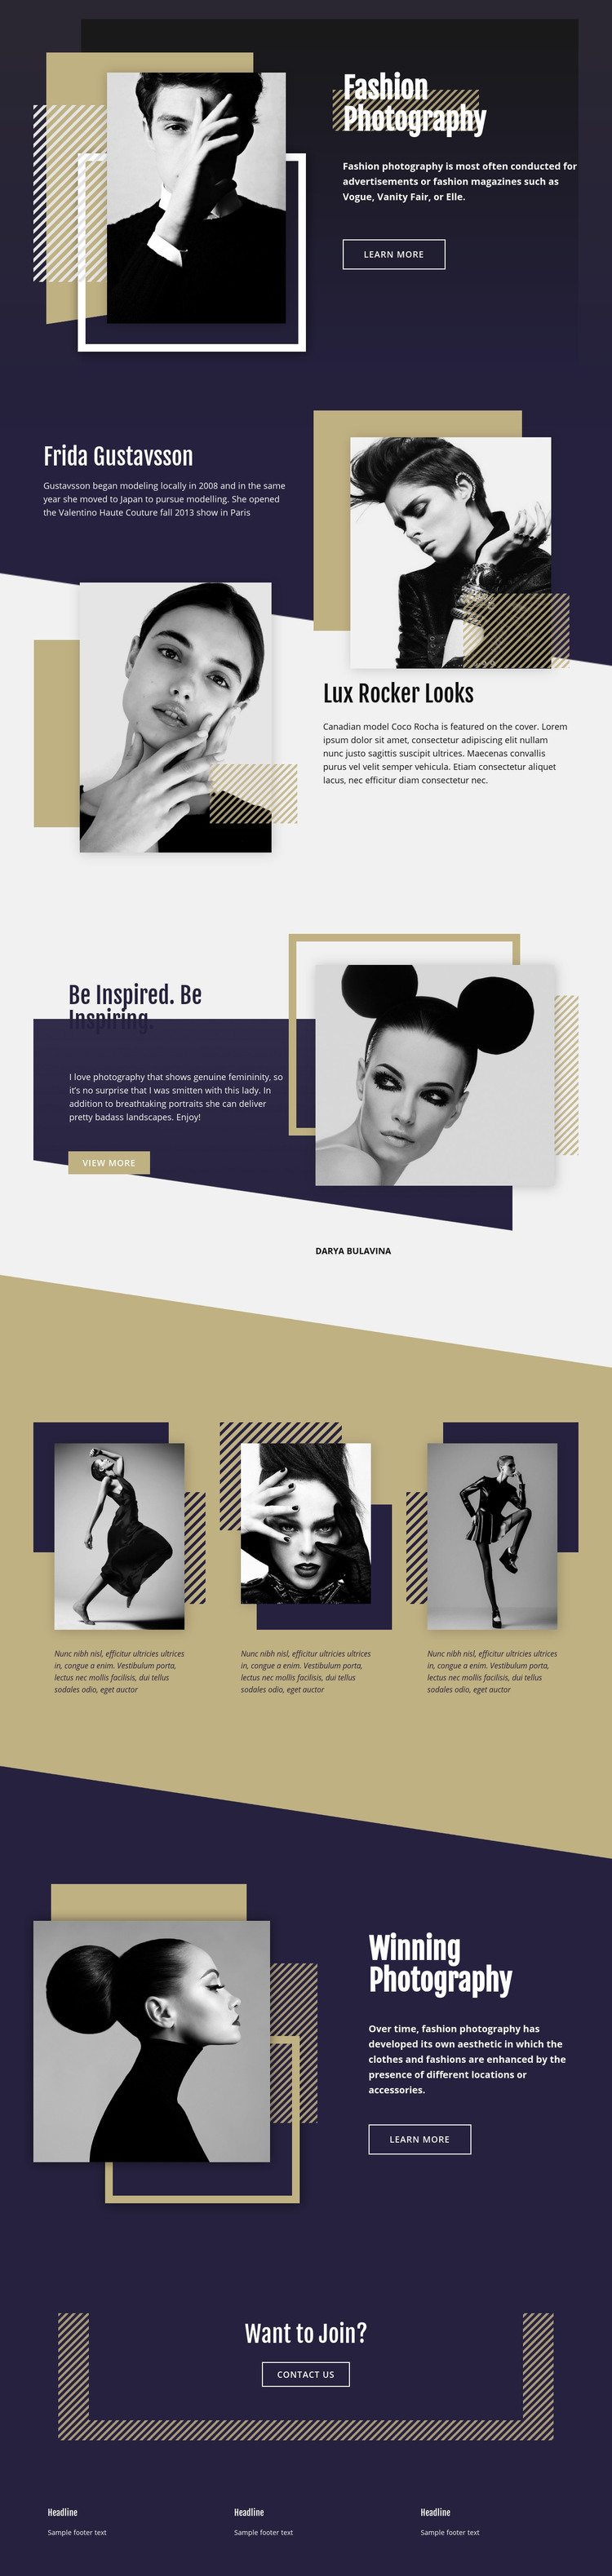 Fashion Photography Homepage Design